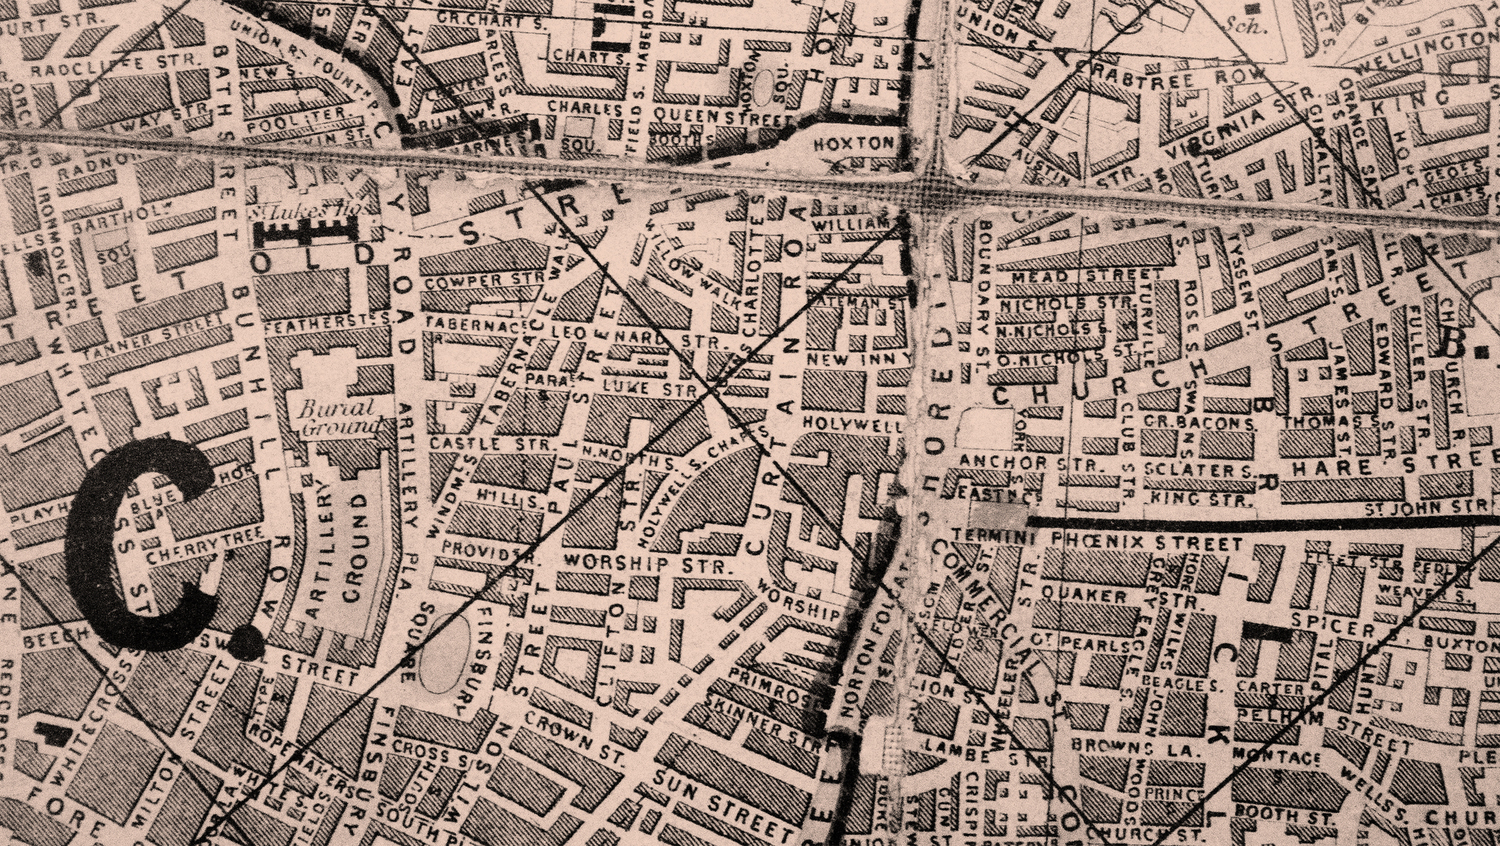 Shoreditch in 1861, without rivington street